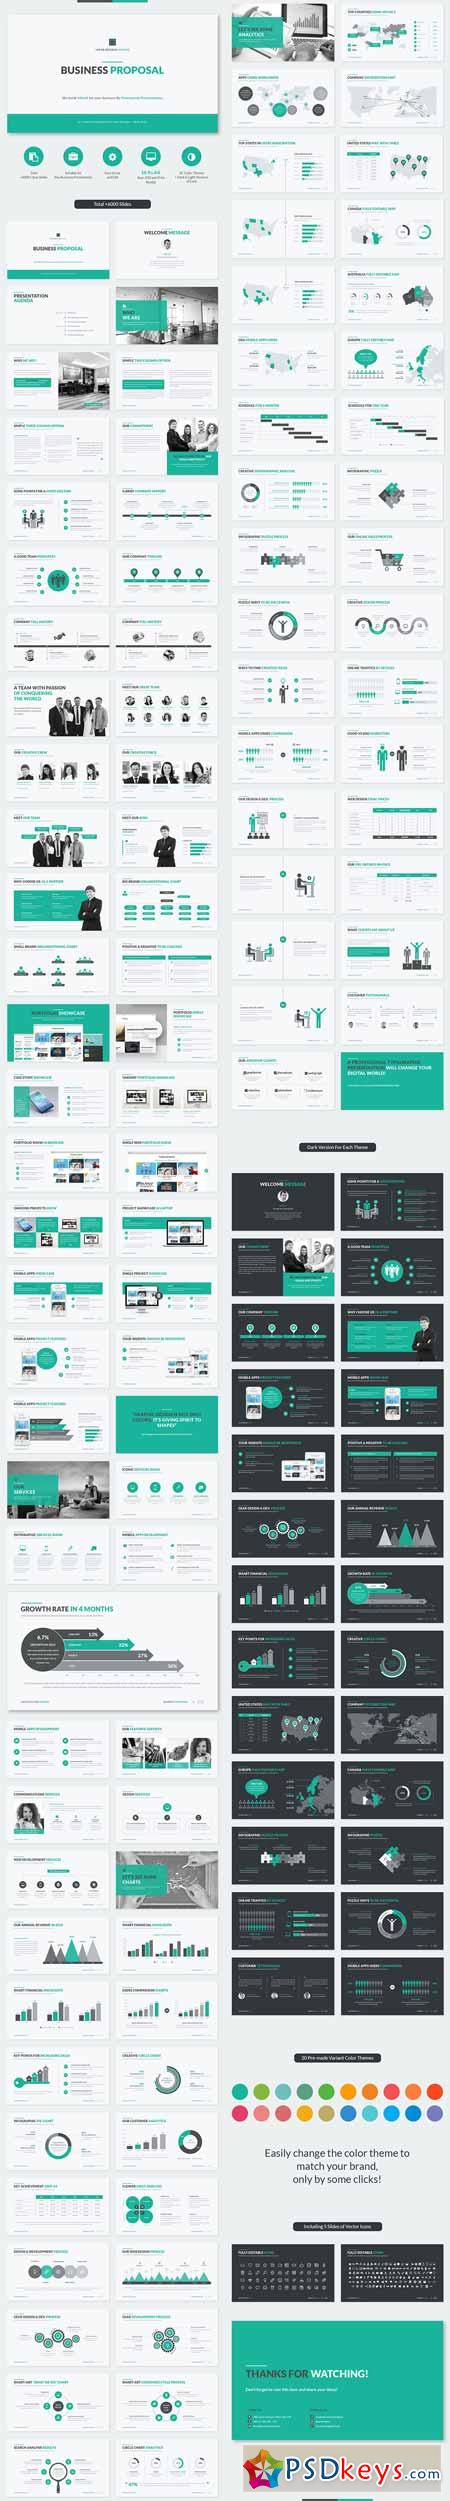 Business proposal powerpoint template 11833931 free download business proposal powerpoint template 11833931 wajeb Gallery